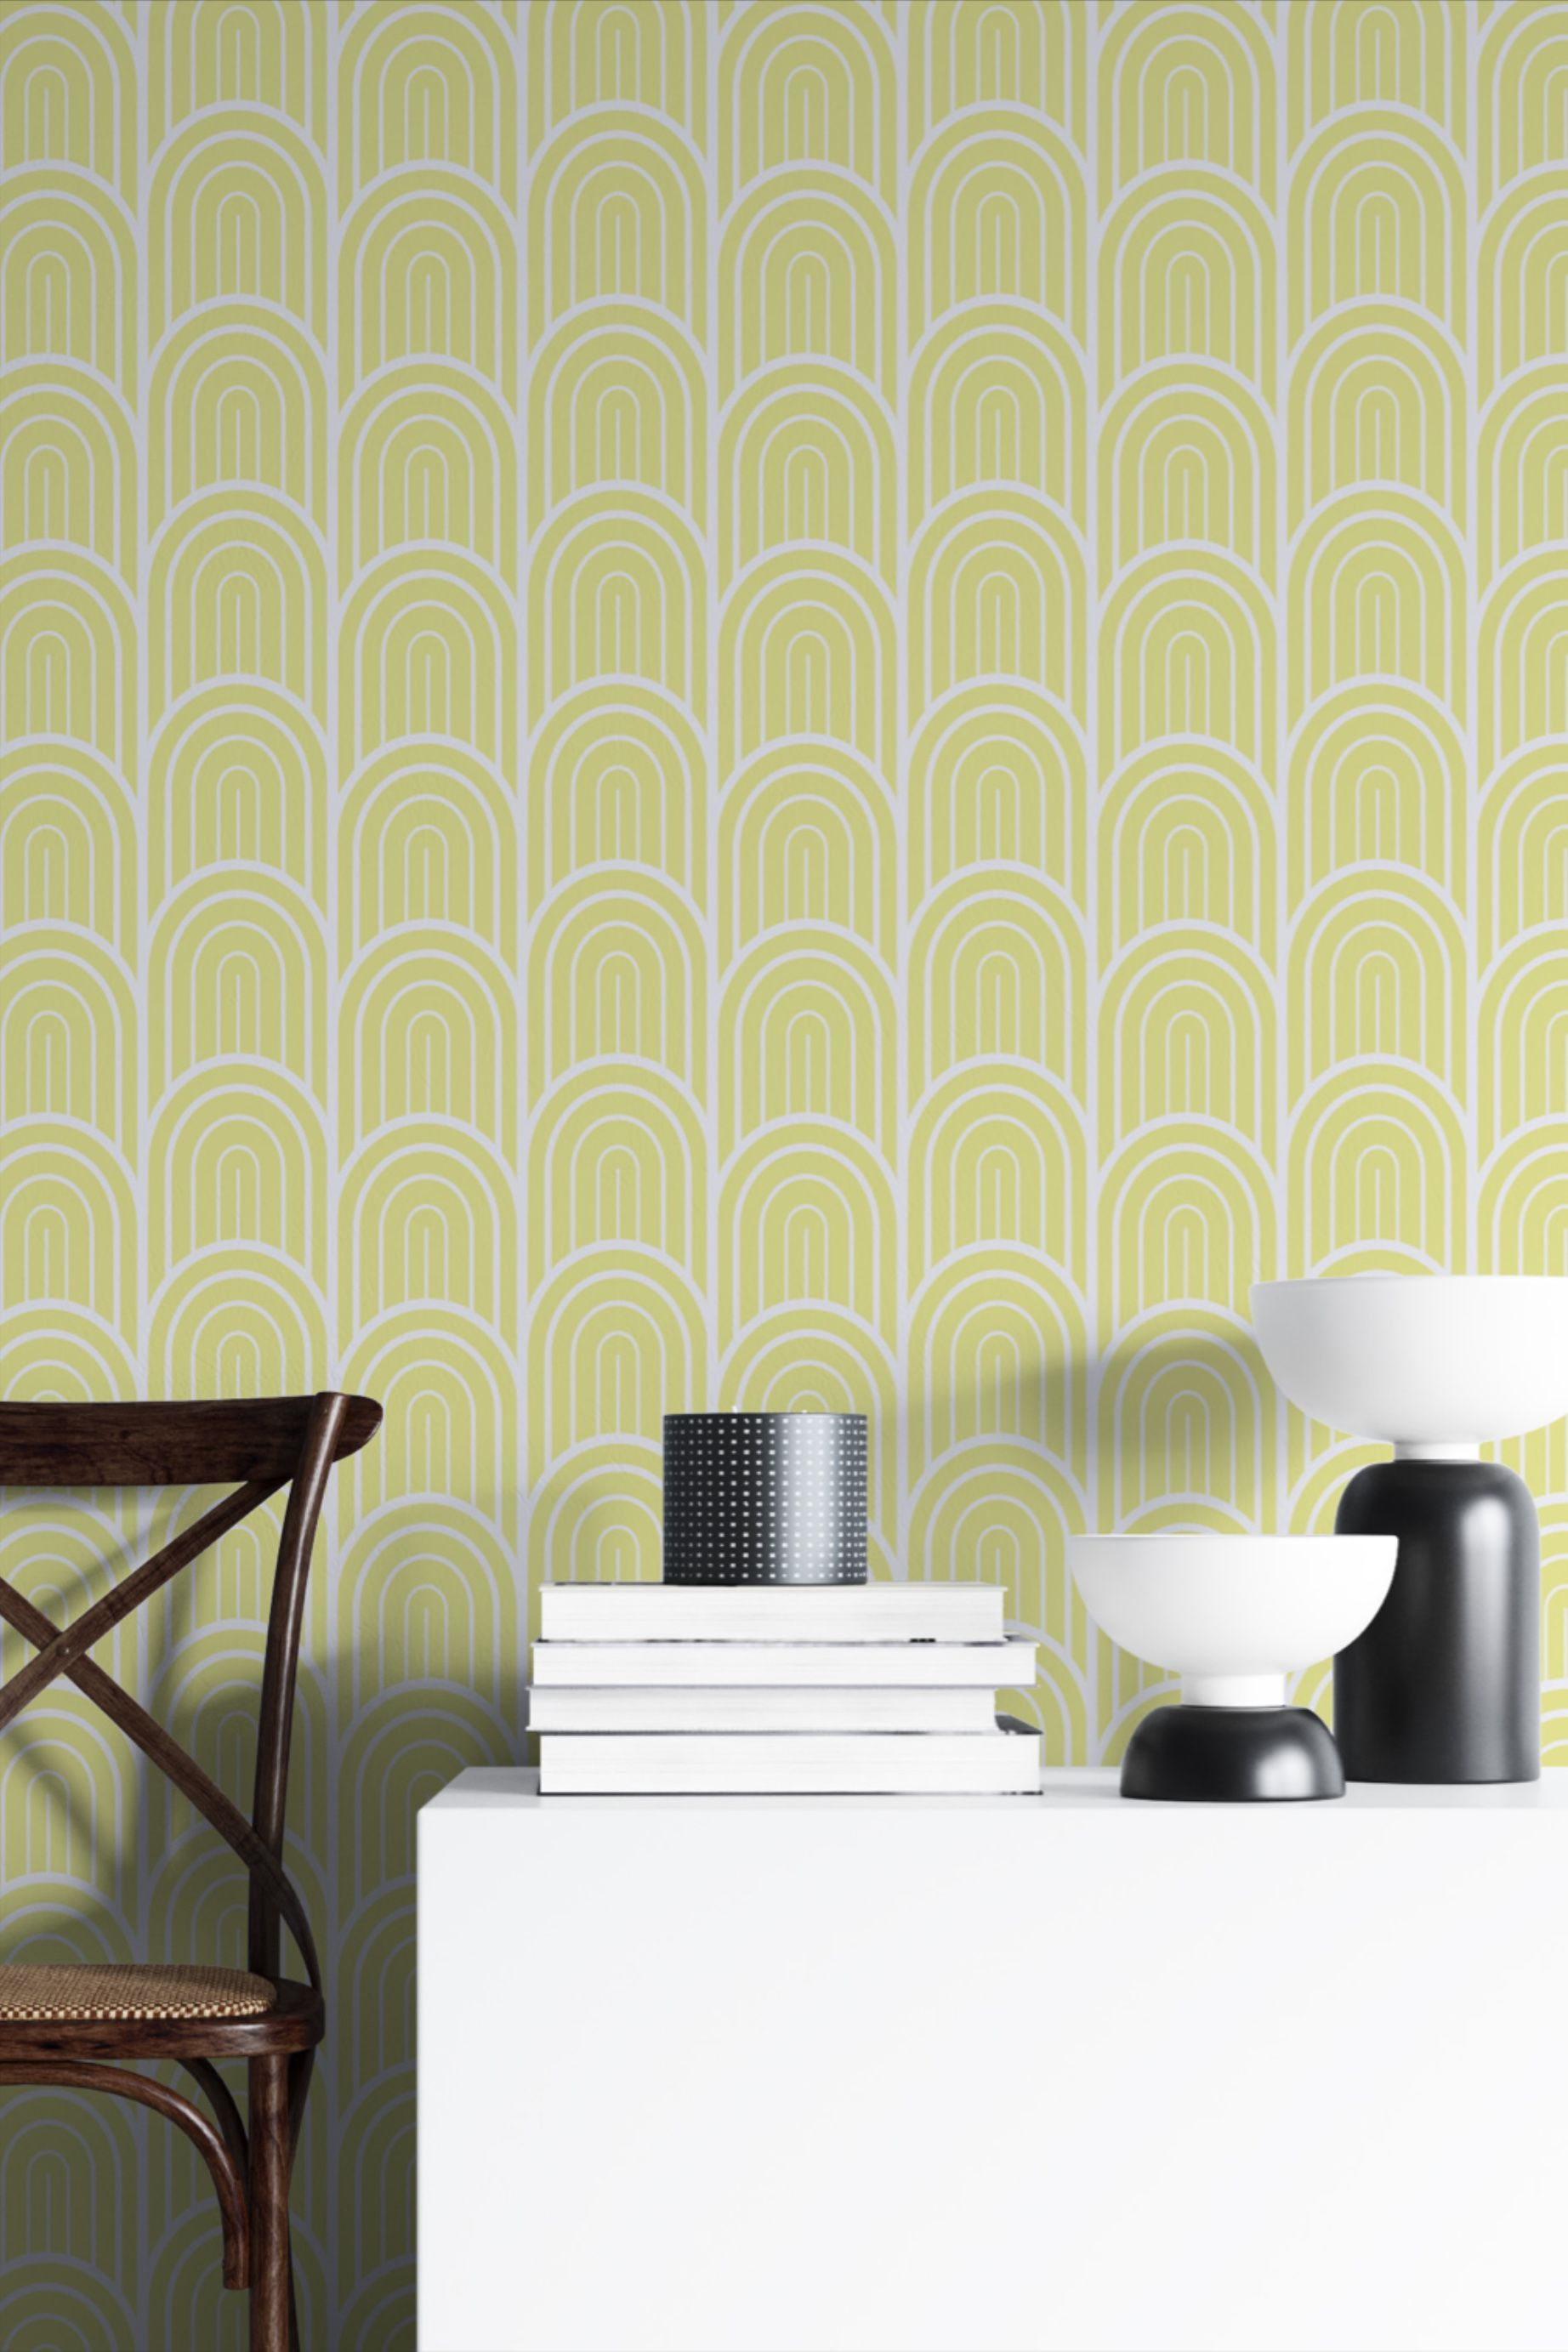 Art Deco Yellow Wallpaper Peel And Stick Geometric Self Adhesive Wall Covering Kitchen Wall Mural Bedroom Wallpaper In 2020 Yellow Wallpaper Wall Murals Bedroom Wallpaper Living Room